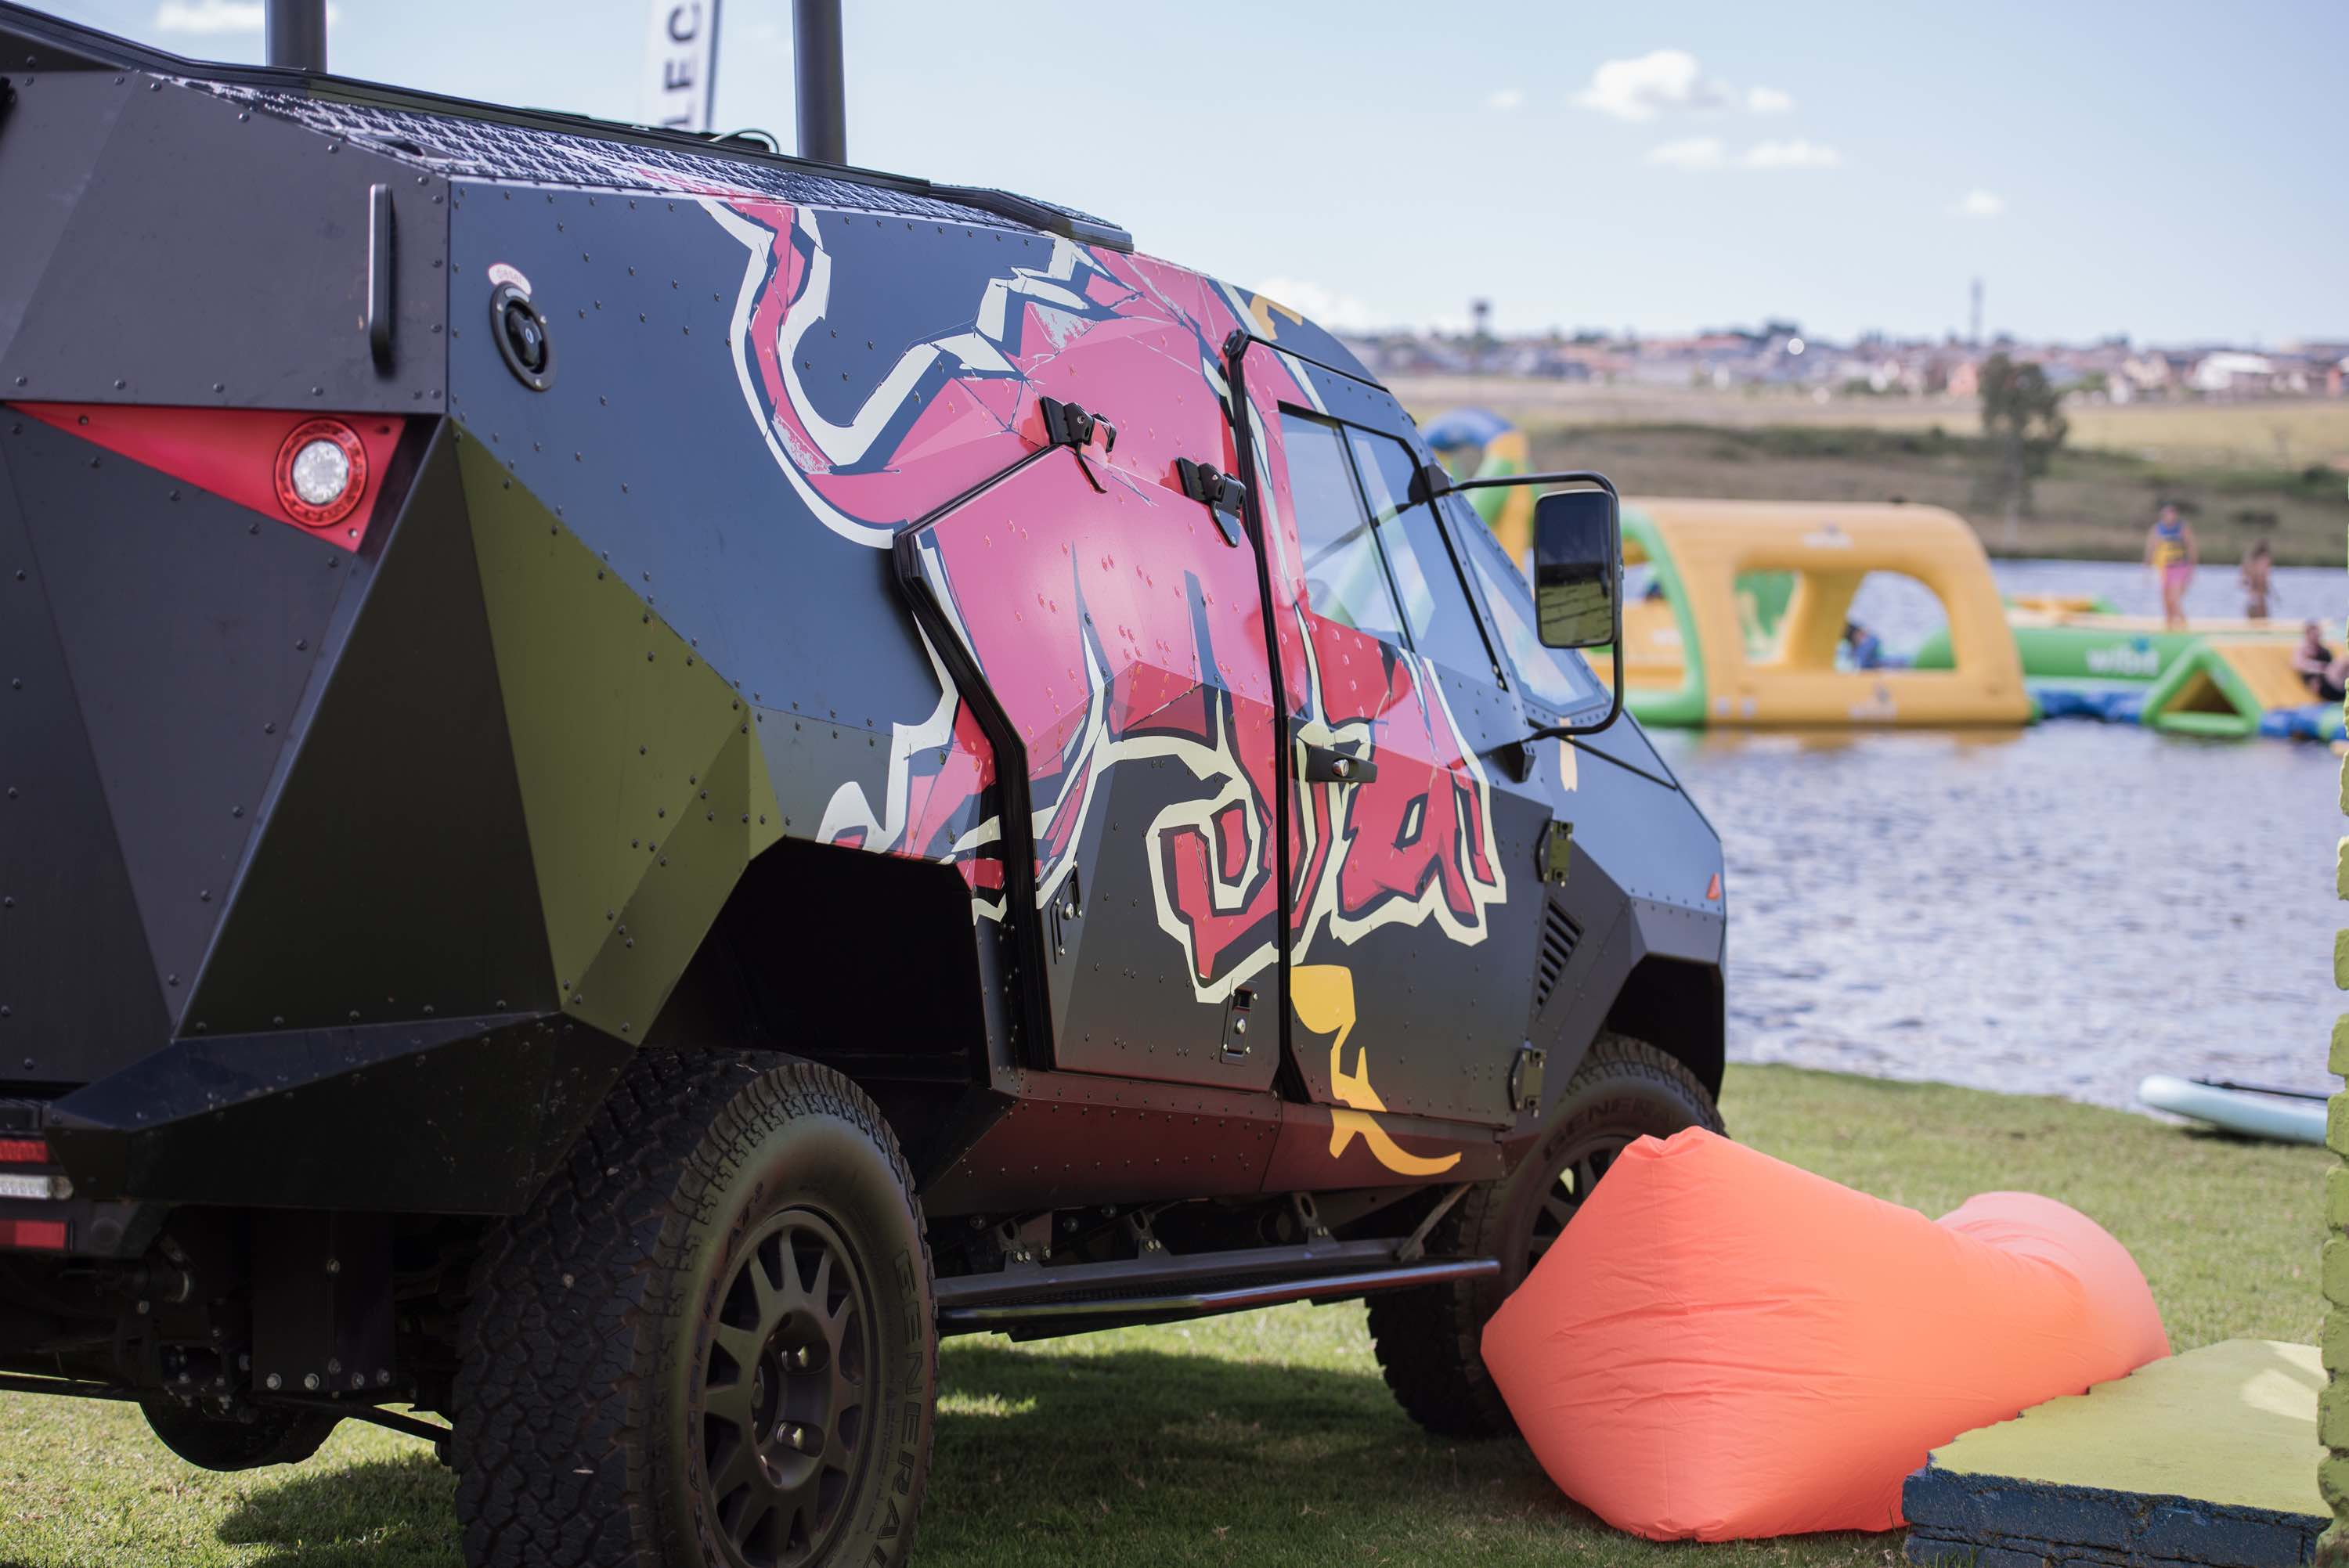 Stop 1 of the 2017 South African Wakeskate Tour took place at StokeCity Wakepark